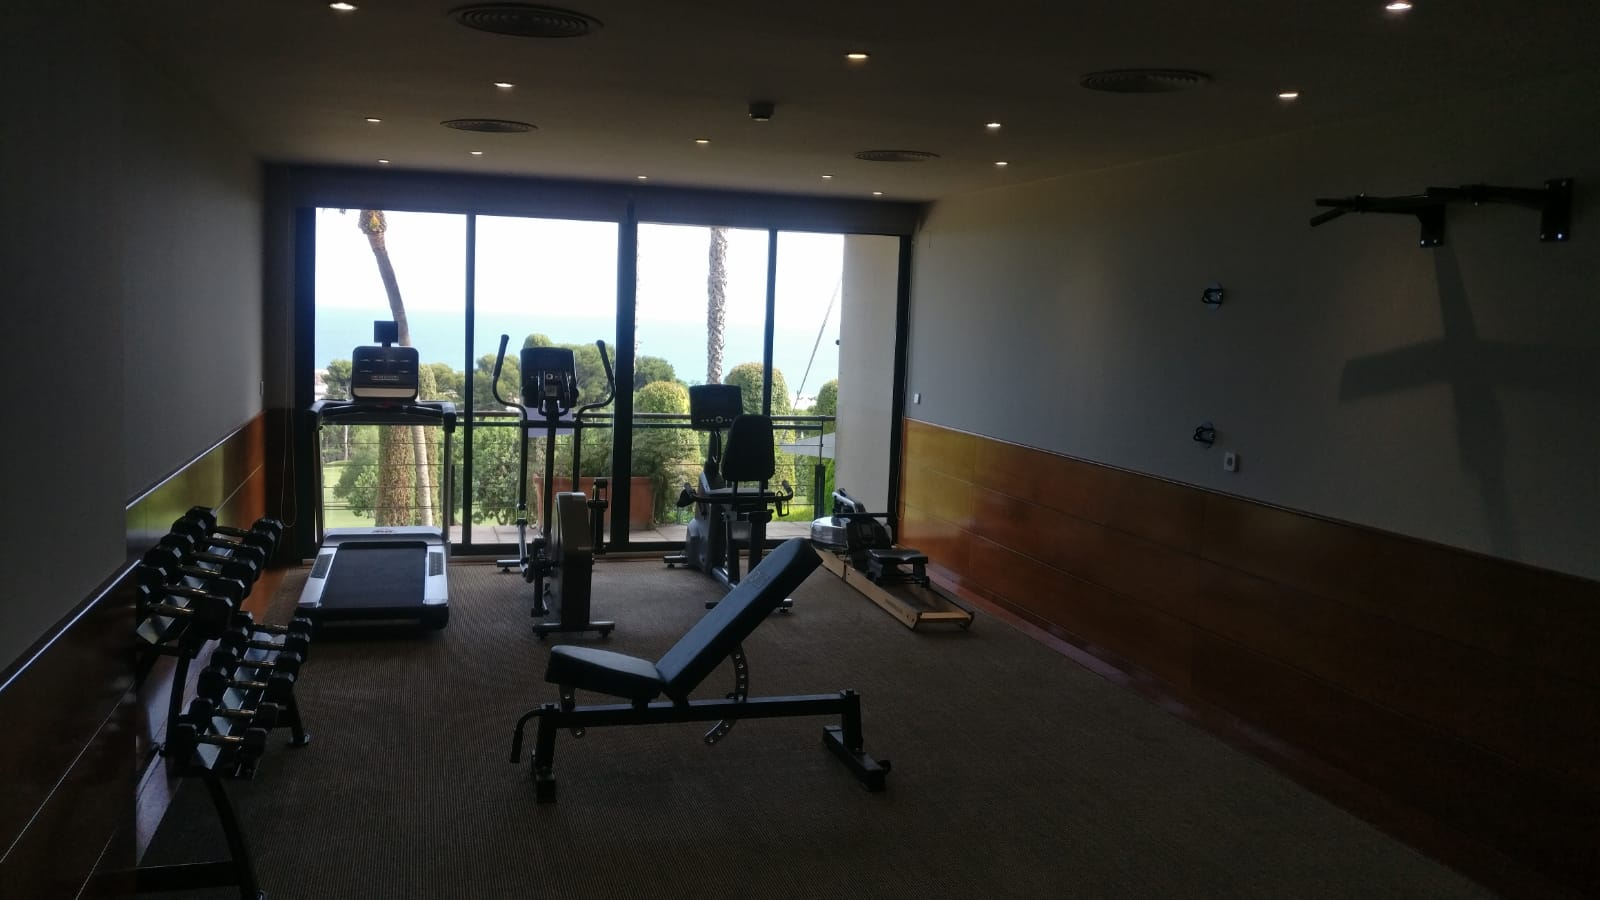 Gym Club de Golf Llavaneras